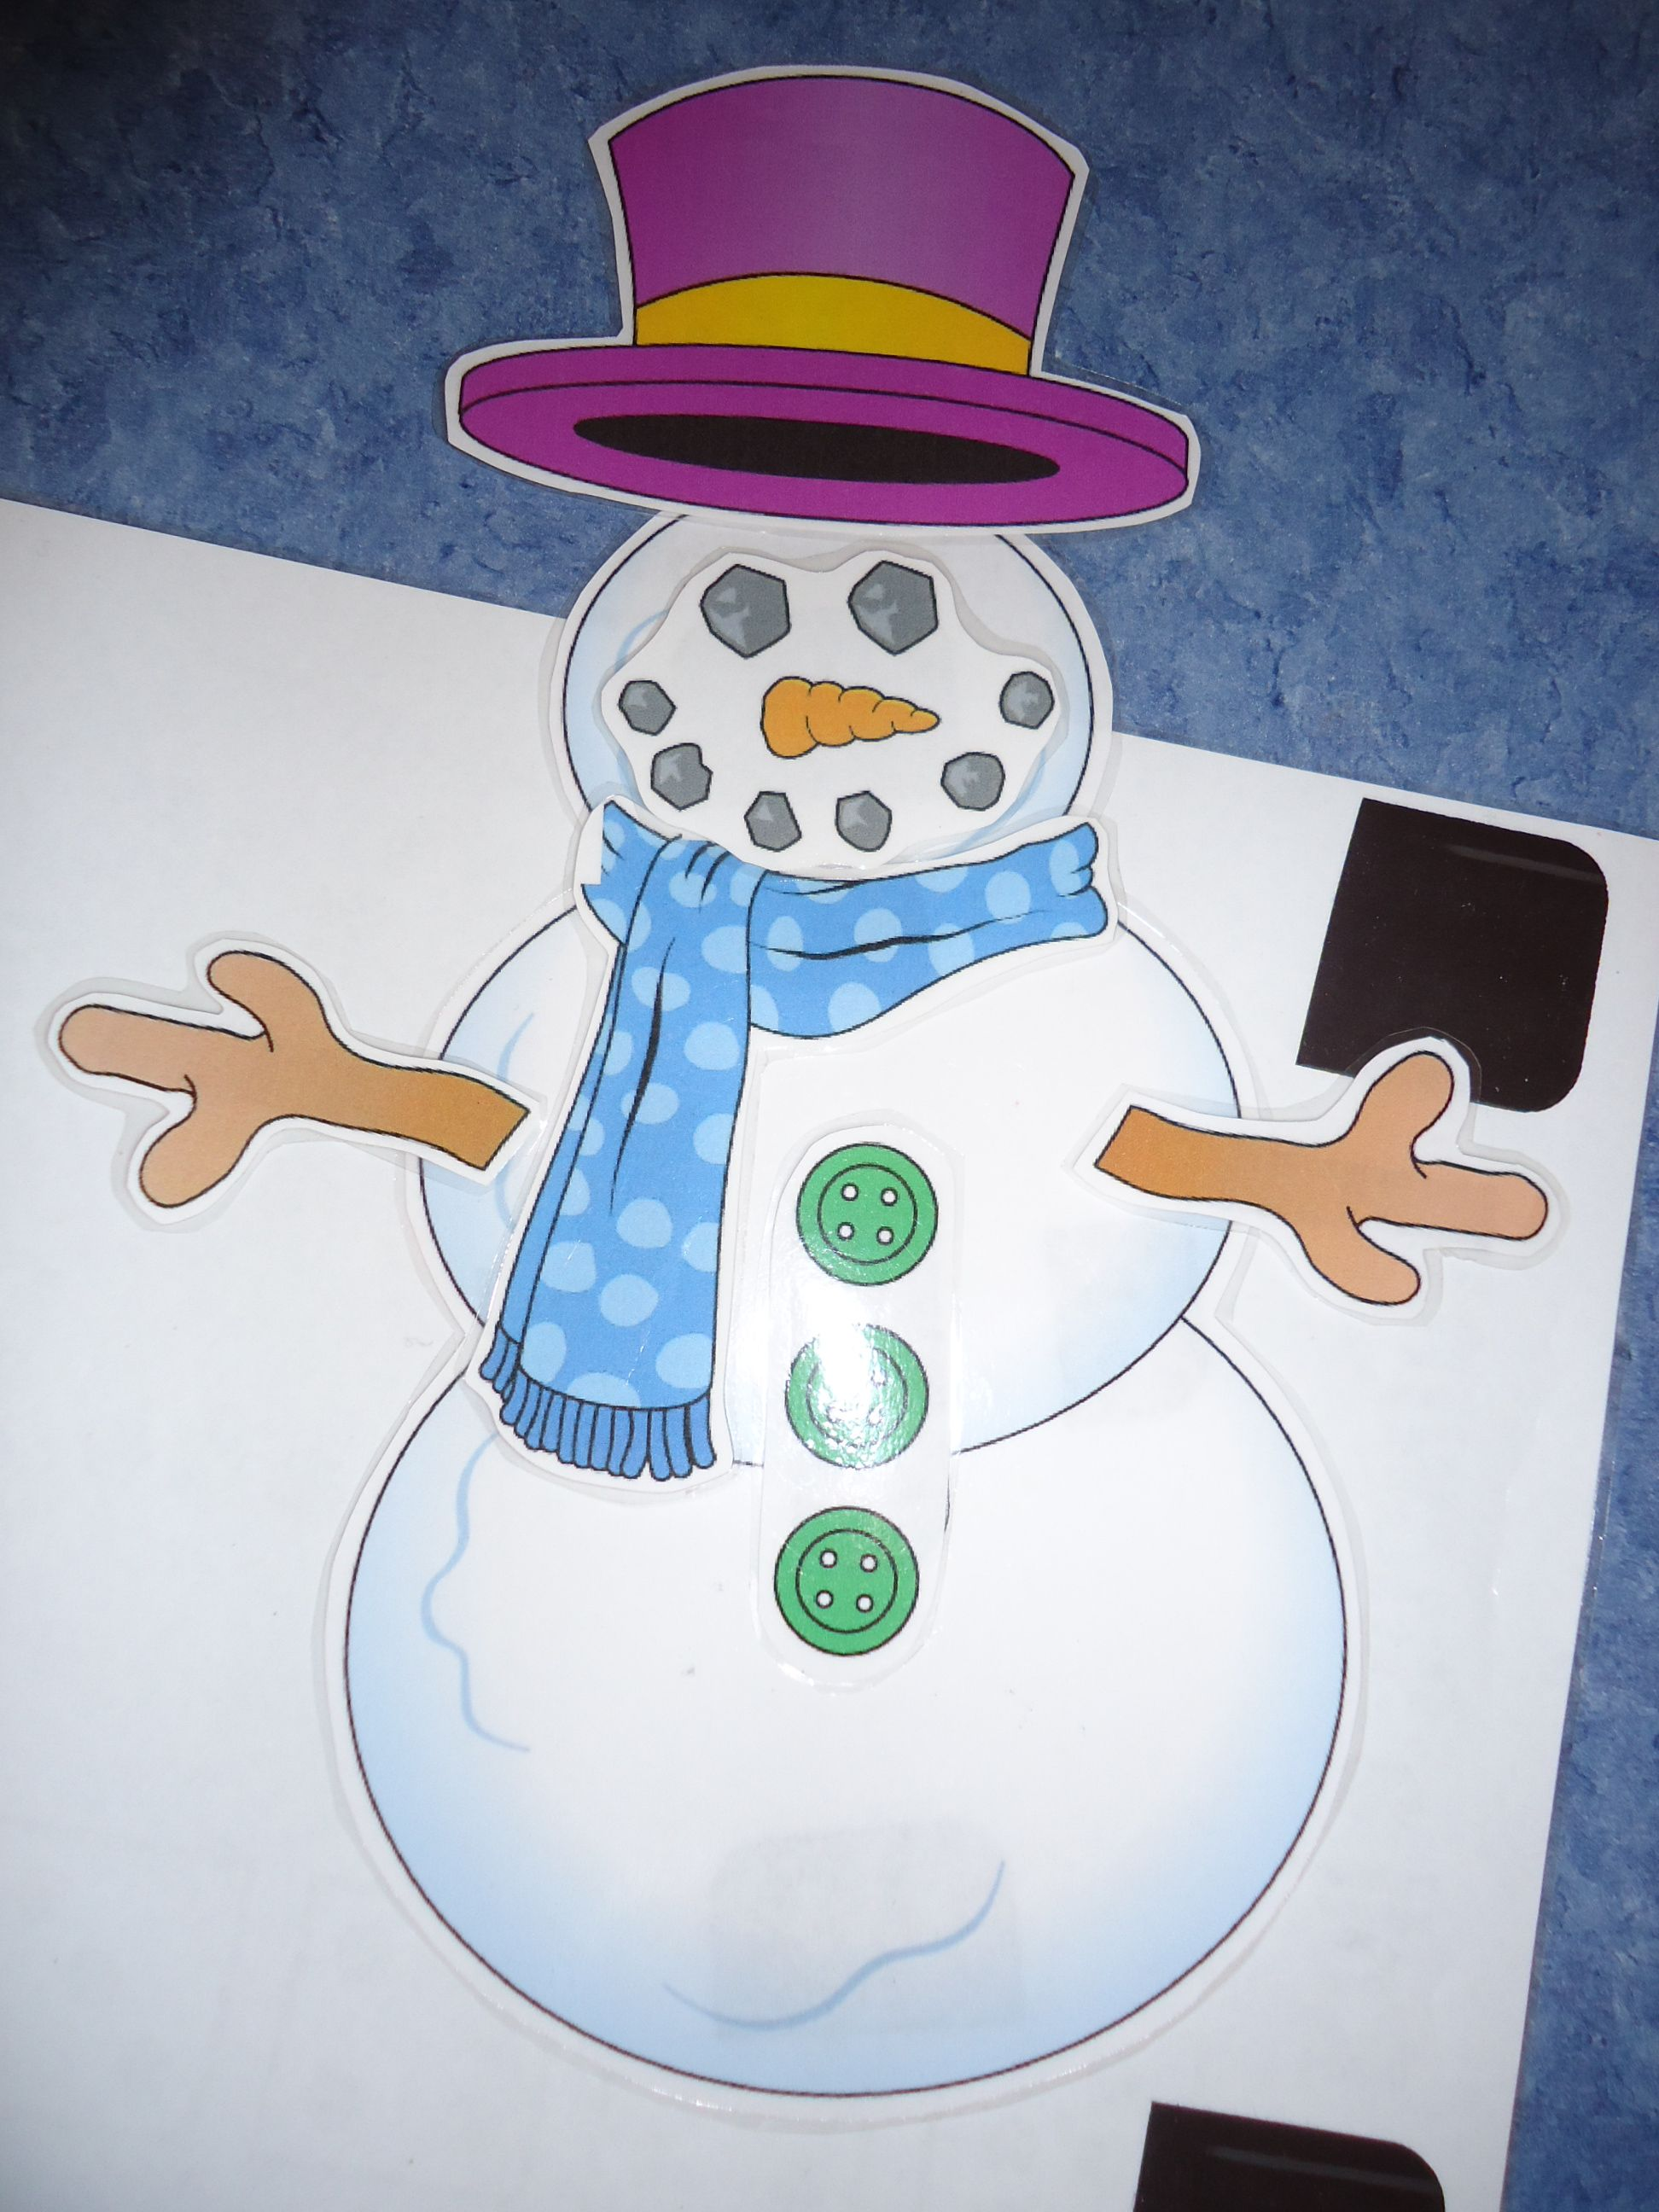 The Snowman Created By Playing The Roll The Dice Game